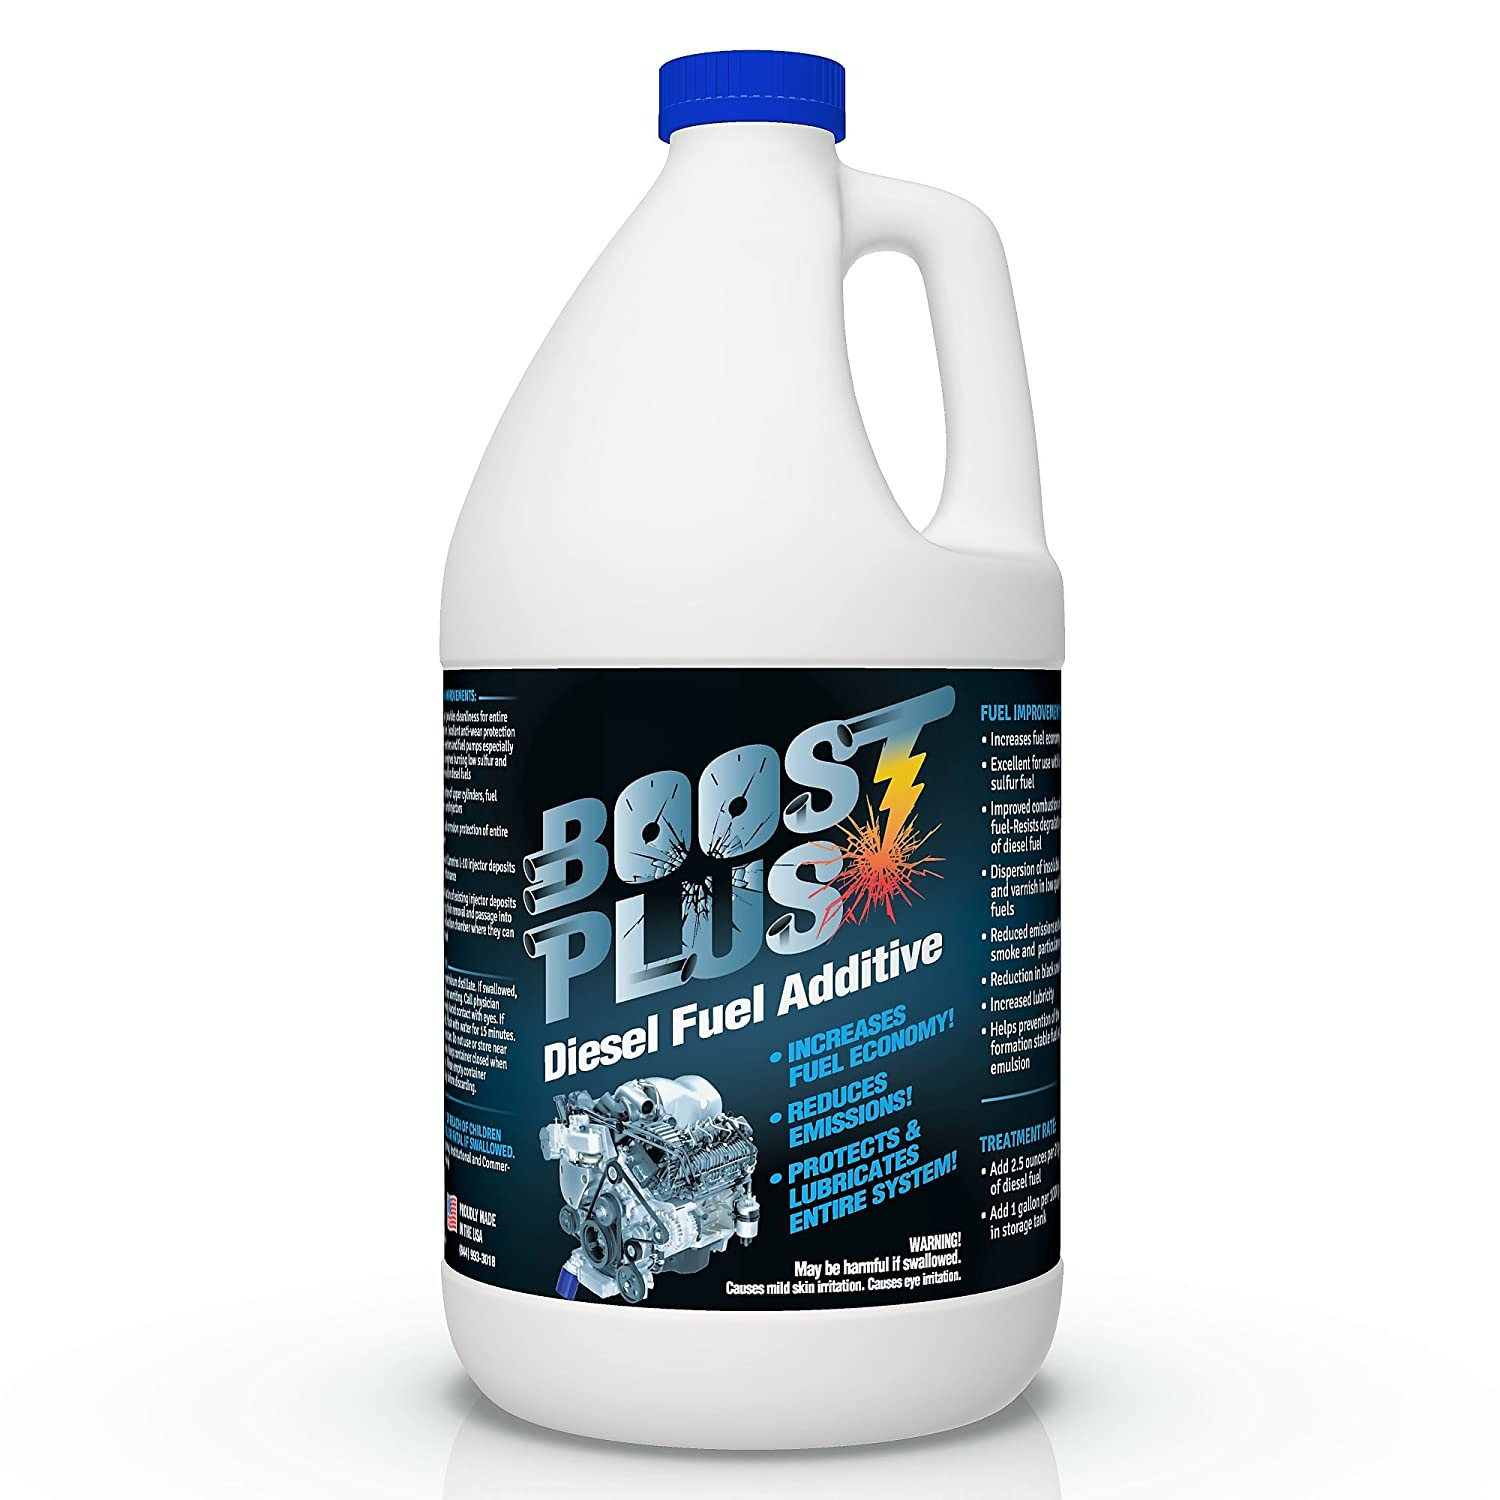 Boost Plus | Best Diesel Engine Fuel Additive | Cleans Engine Increases Fuel Economy (1 Gallon) FDC 4333461256